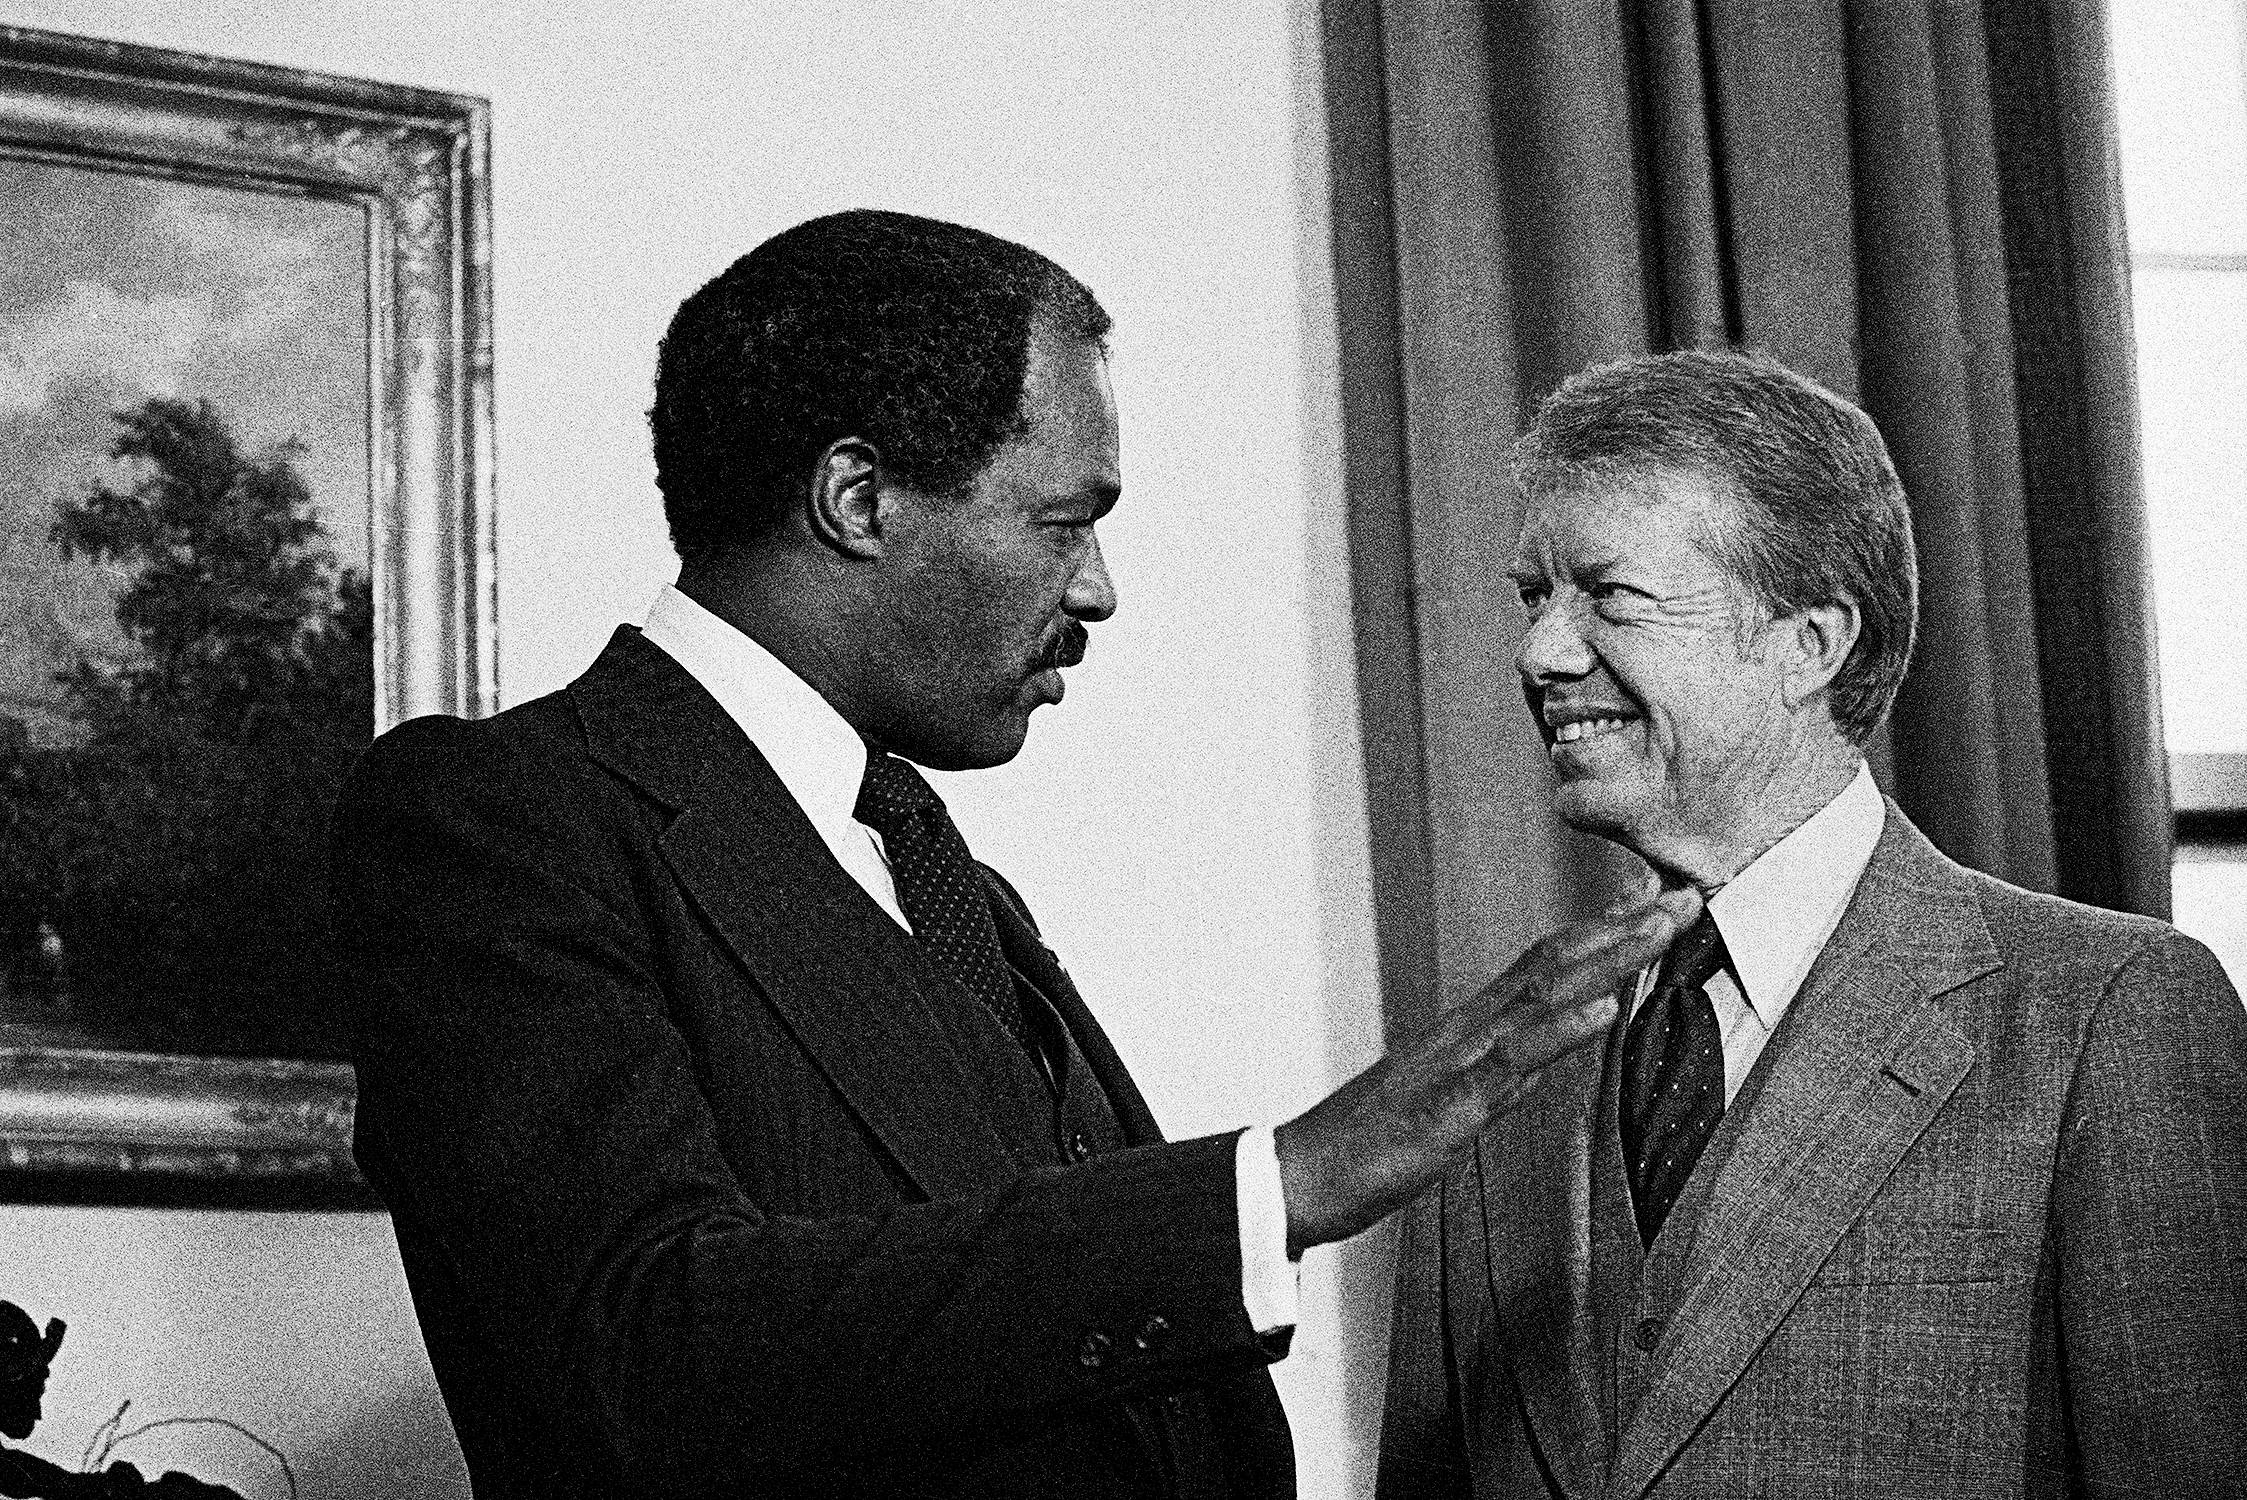 Mr. Mayor - Soon after his inauguration, Mayor Barry paid a visit to the White House to meet with President Jimmy Carter. One of the topics they discussed was the good experience first daughter Amy Carter had attending D.C.'s public schools. (Photo: Bettmann/Corbis)